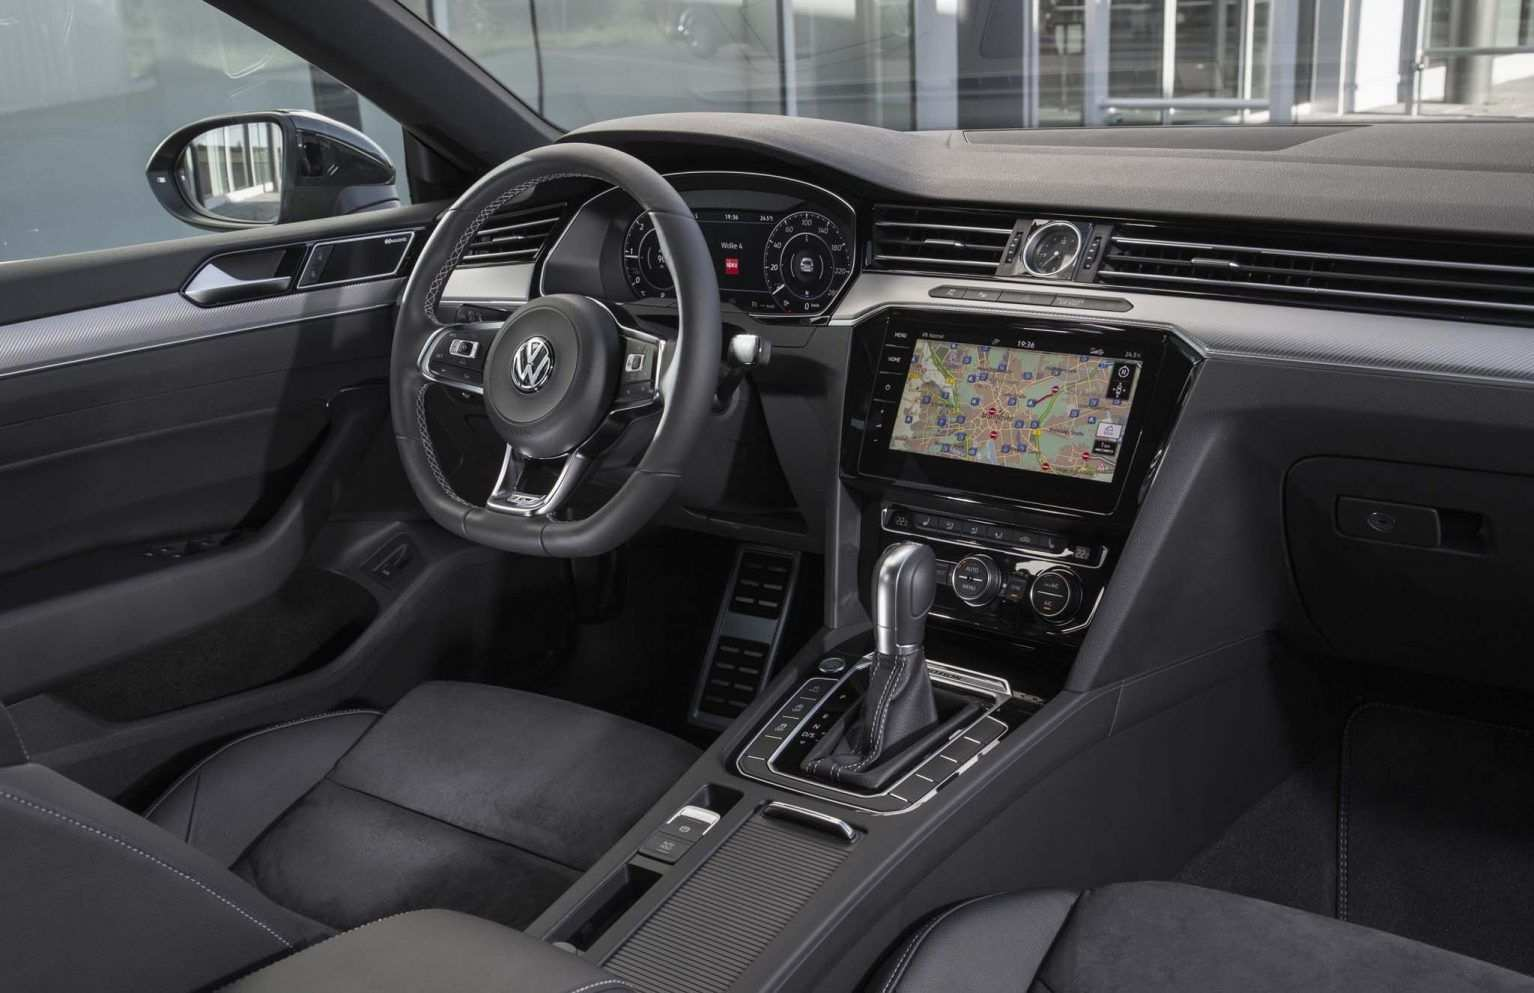 17 All New New Volkswagen Interior 2019 Specs Performance for New Volkswagen Interior 2019 Specs